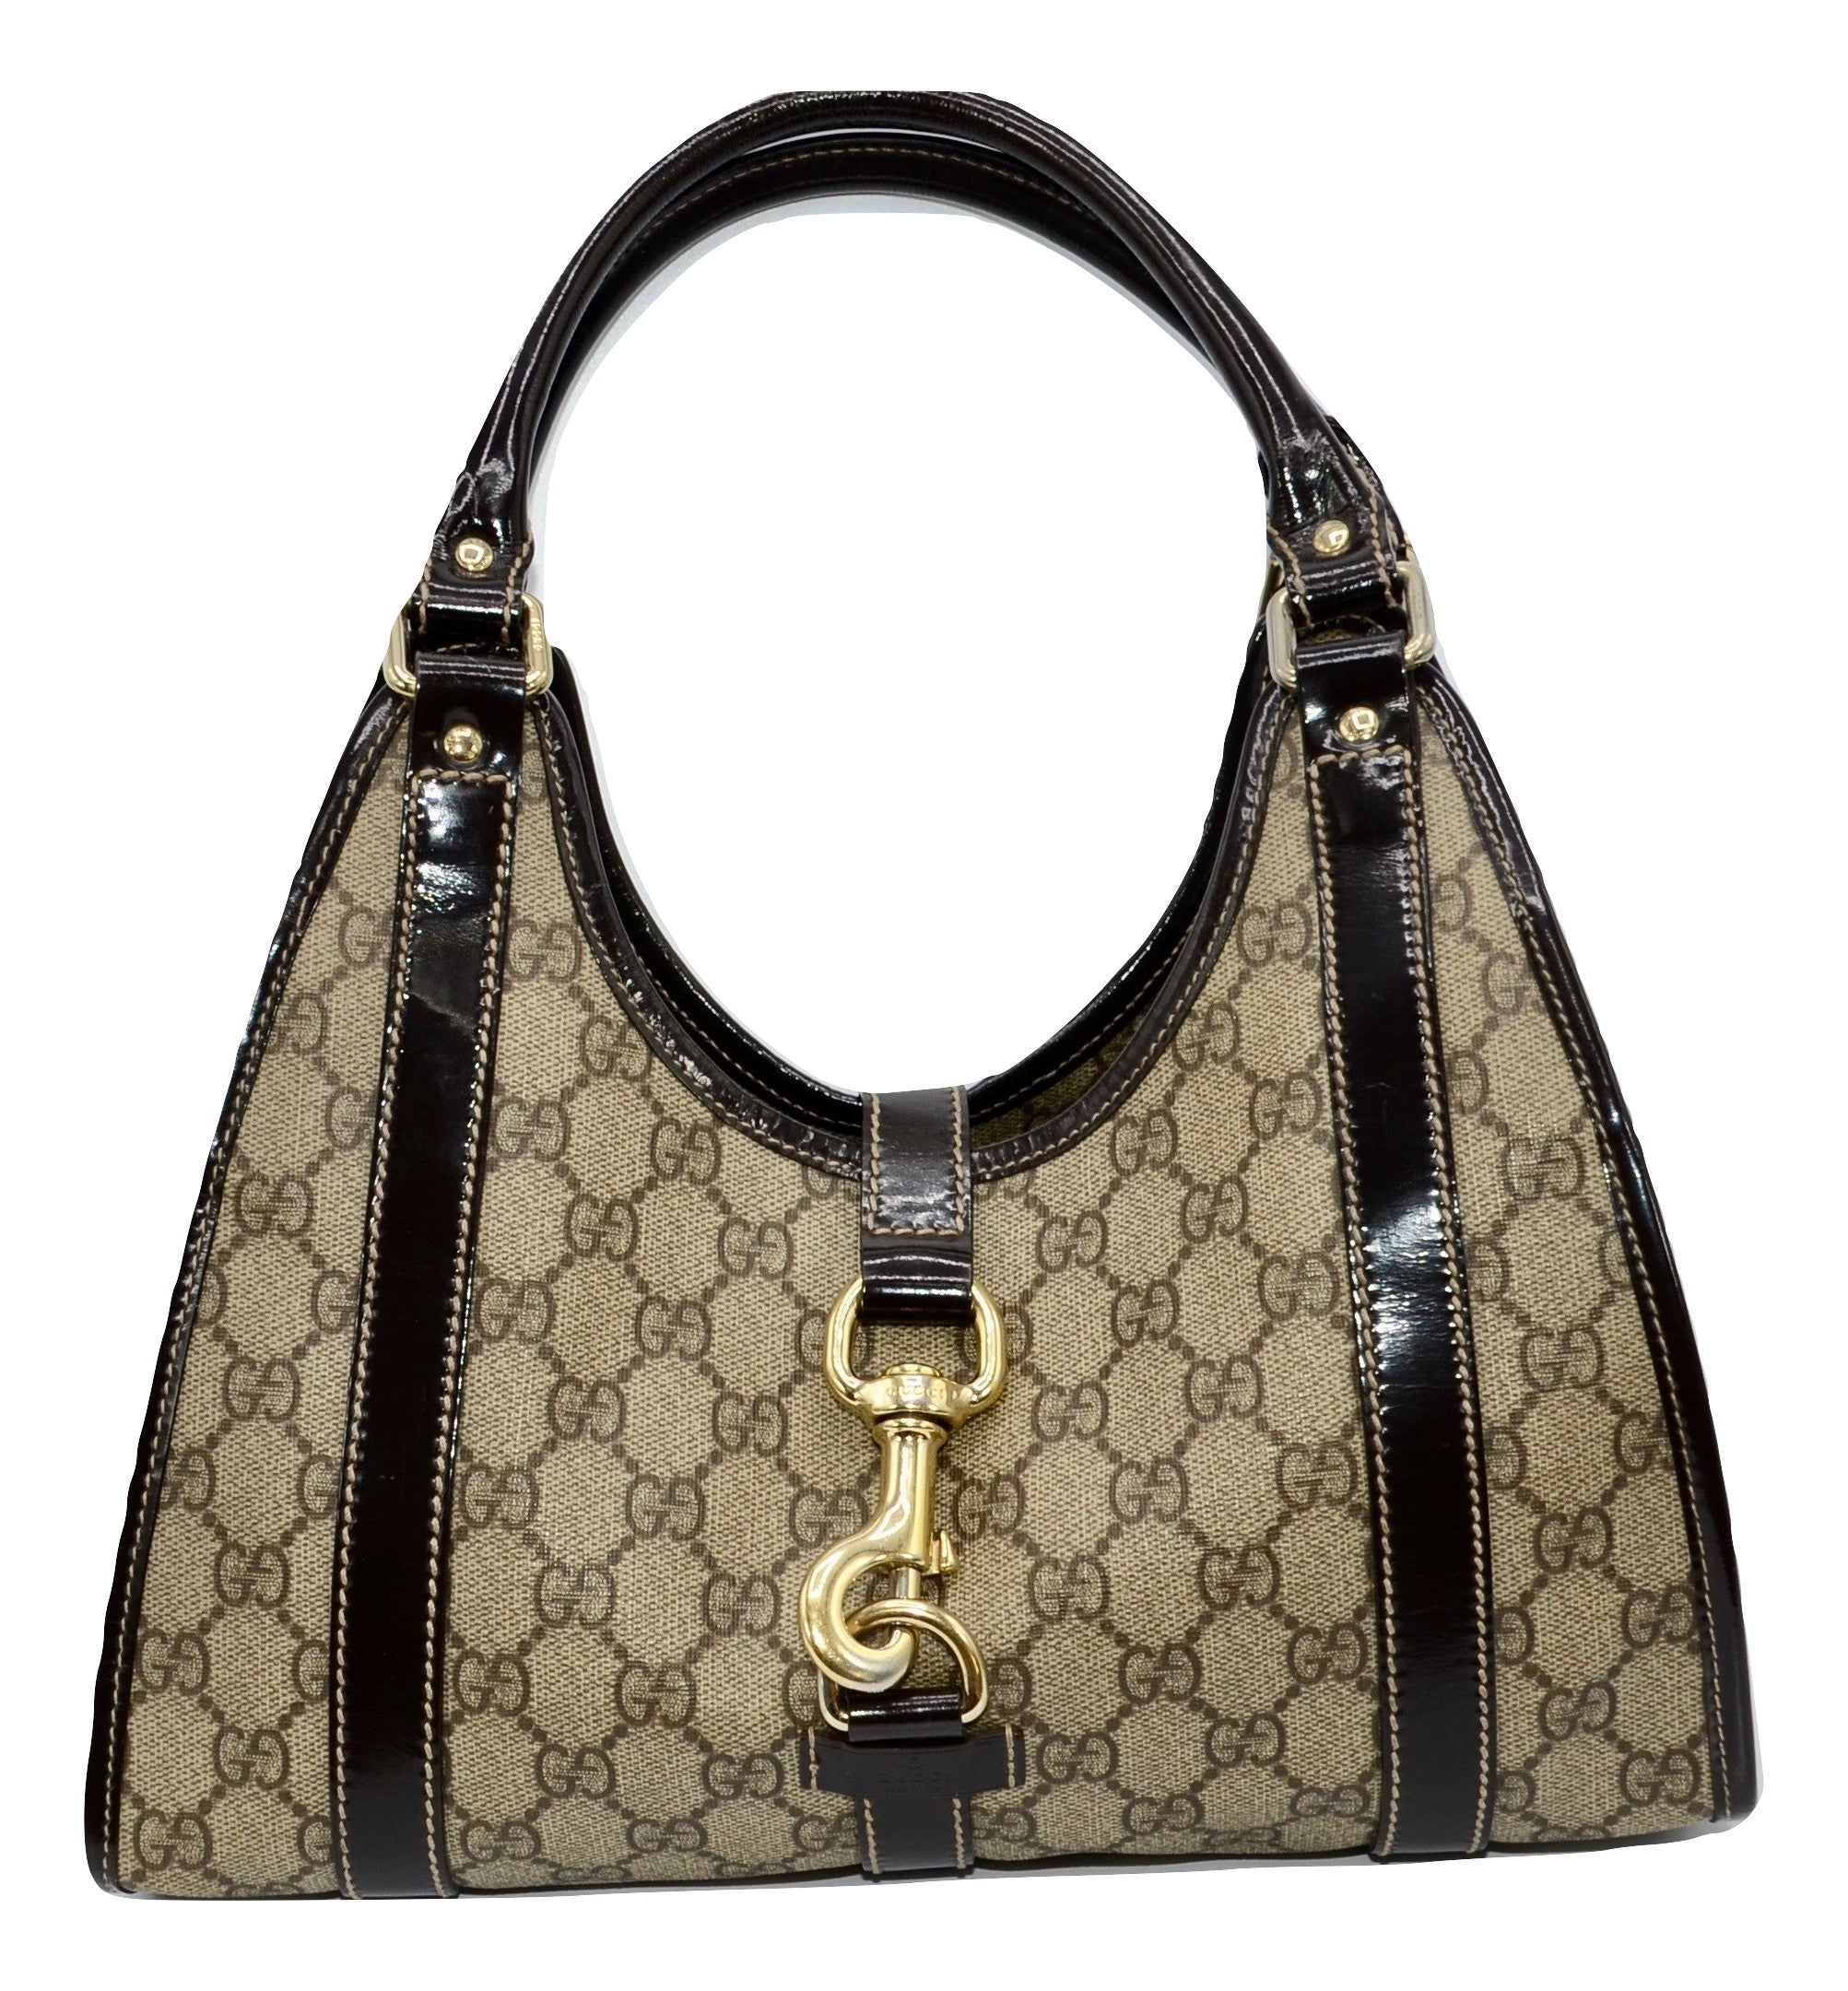 Gucci vintage bag - Iconics Preloved Luxury